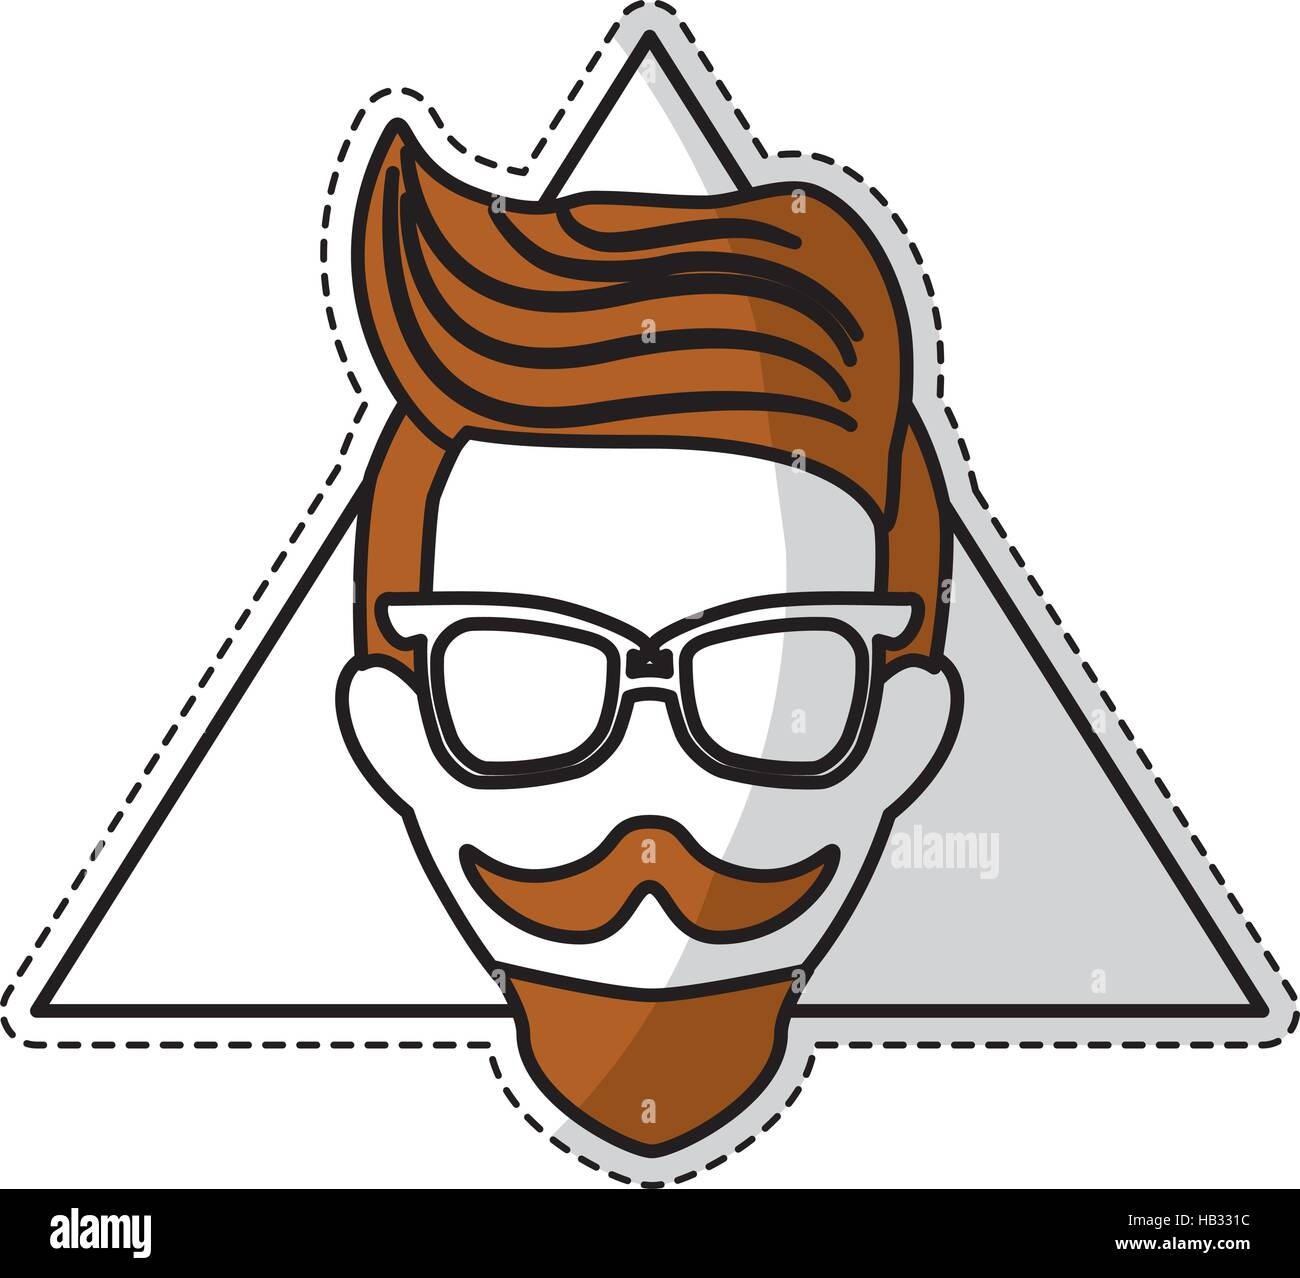 Sticker of man face with mustache and glasses over triangular frame and white background hispter style concept colorful design vector illustration